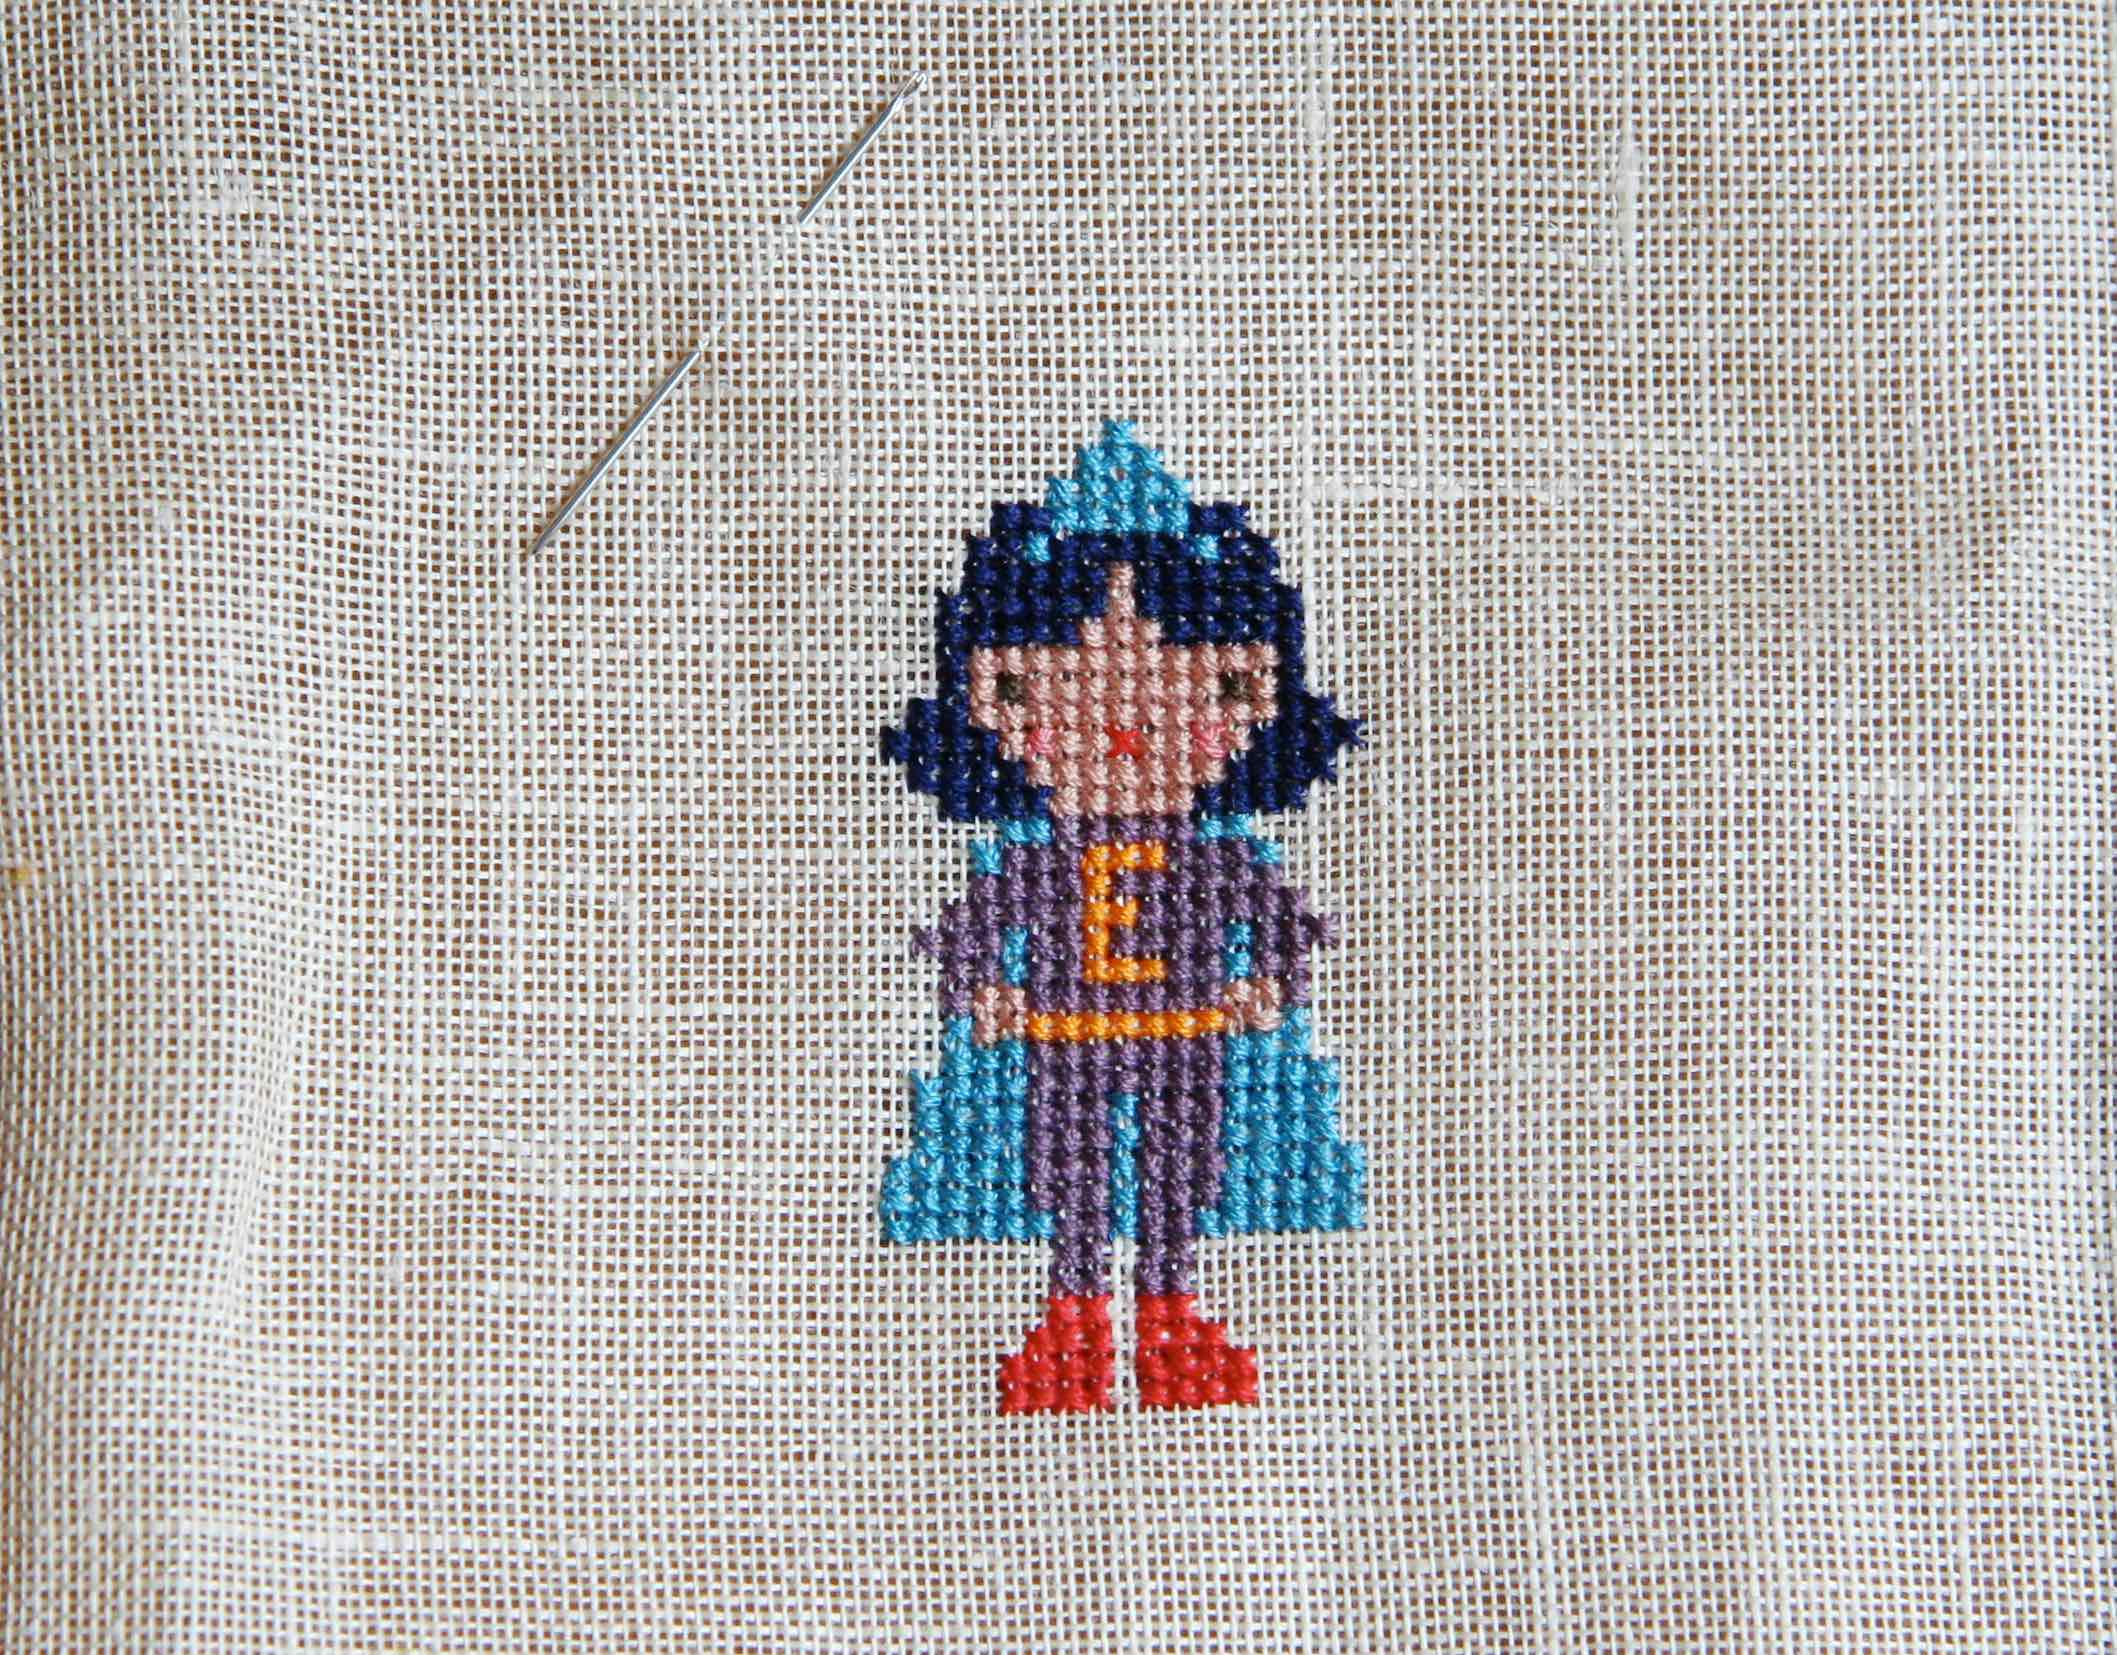 superhero cross stitch